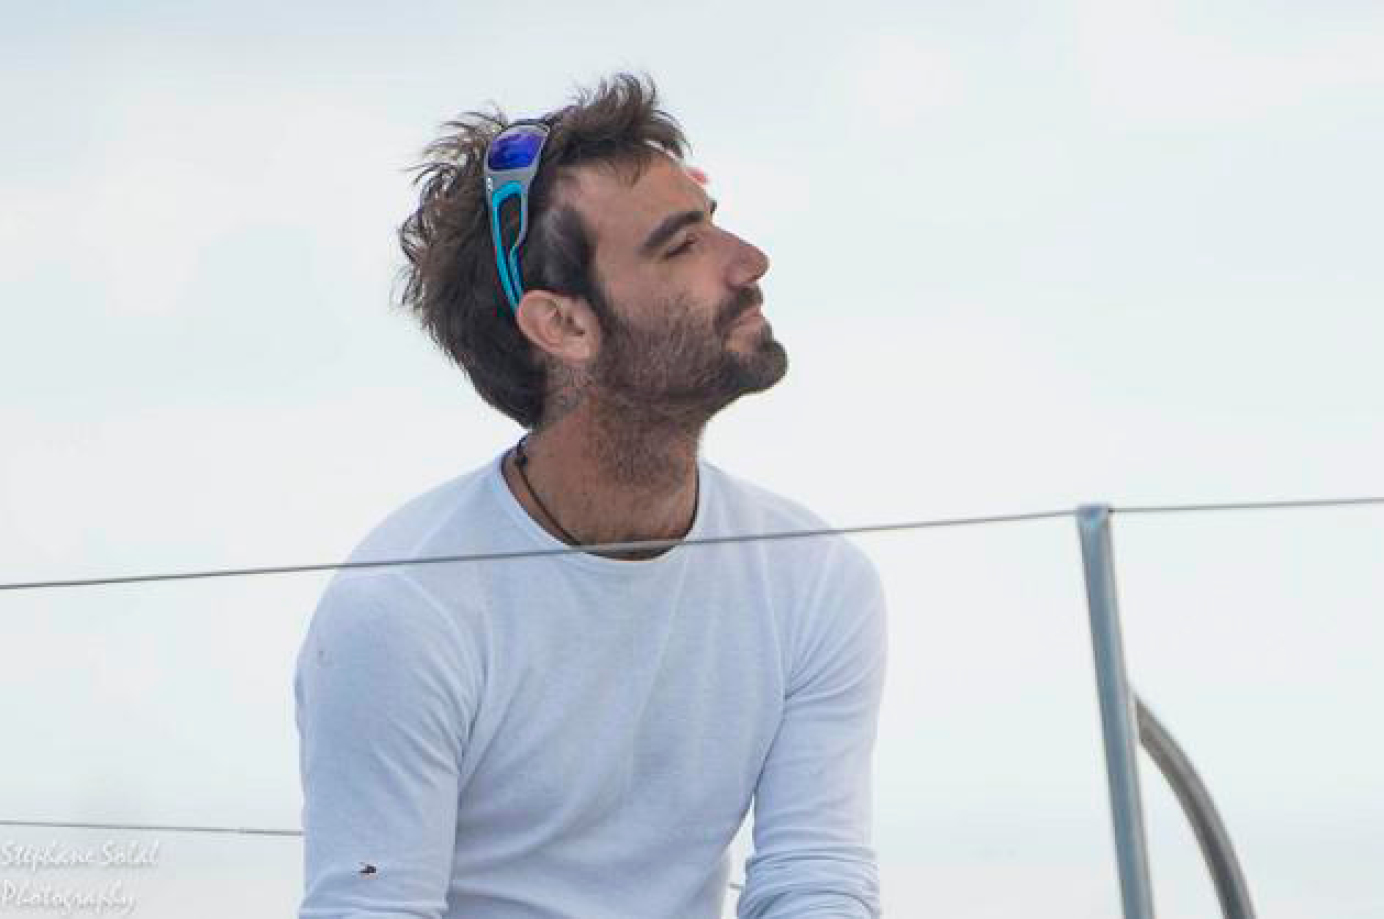 Alan Roura - competitor of the Transat Jacques Vabre